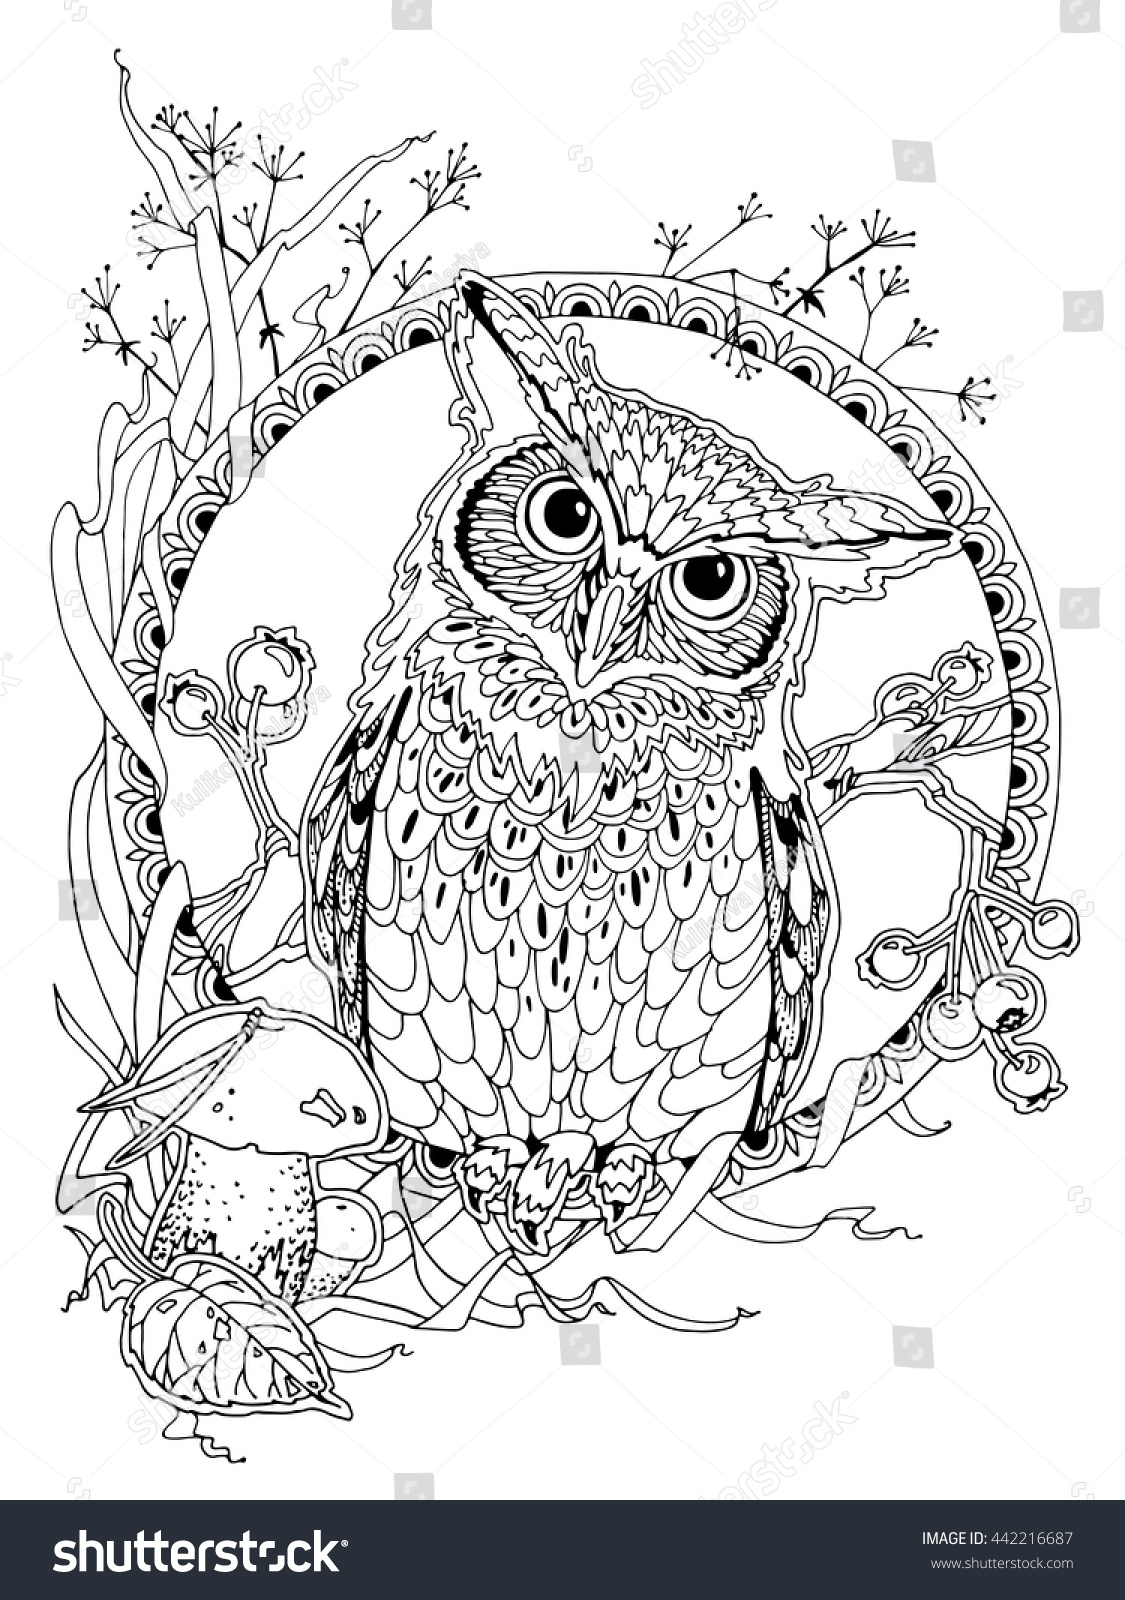 Coloring Difficult Owls 2 Free To Print